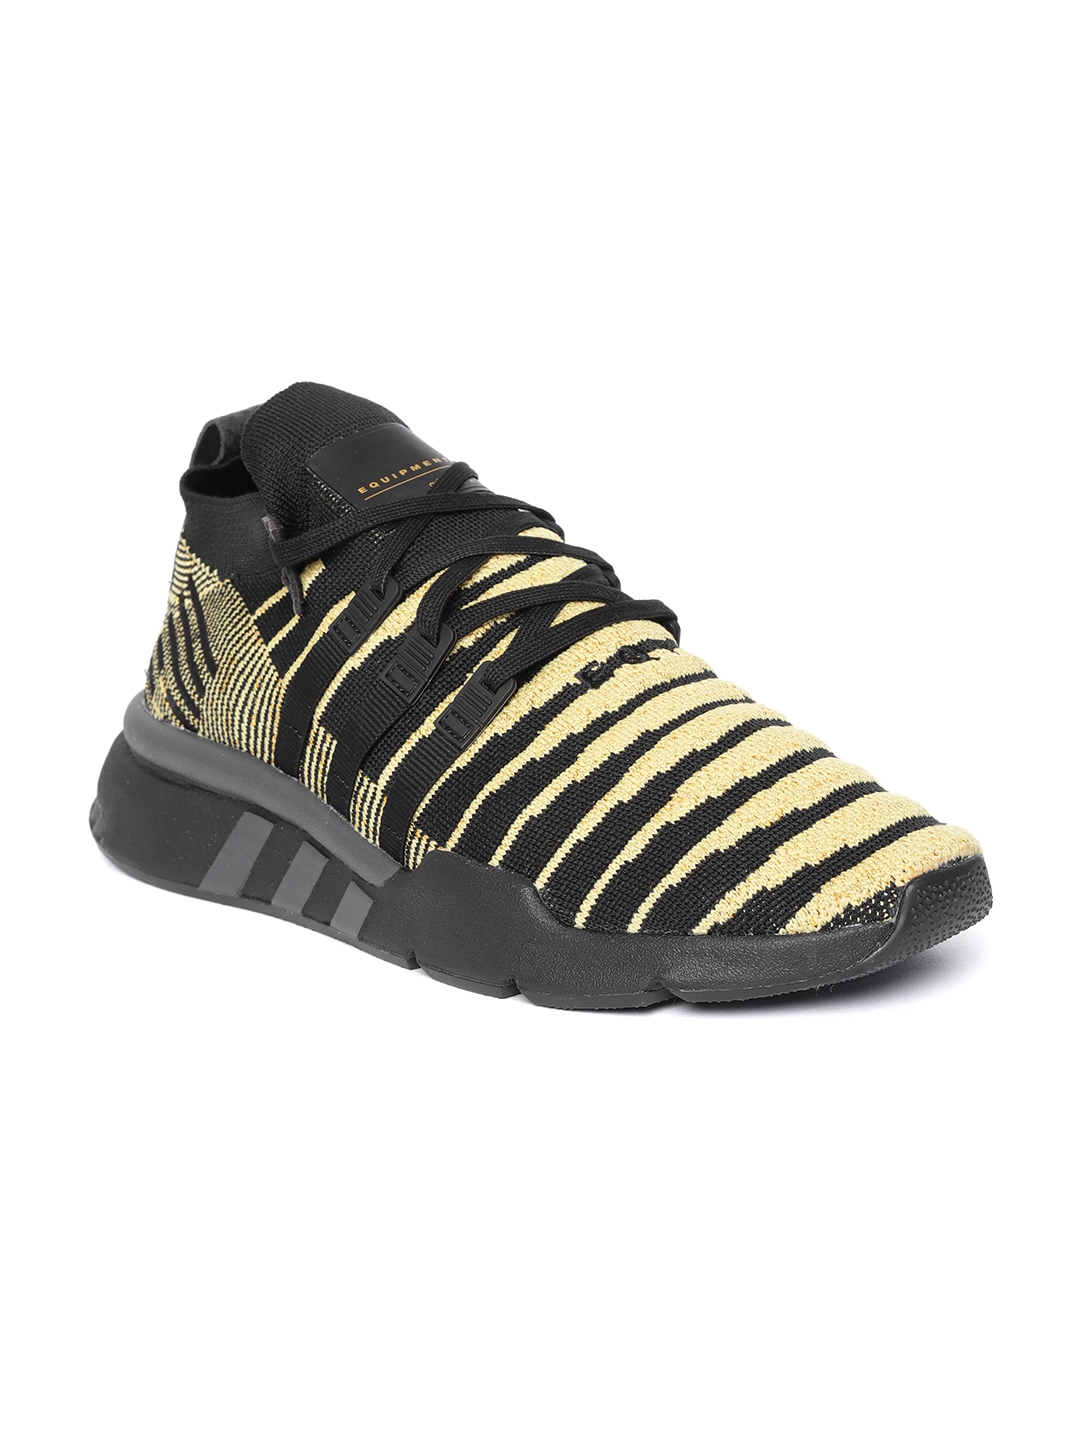 0c54979ce ADIDAS Originals Dragonball Z Men Khaki   Black EQT Support Mid ADV  Primeknit Sneakers